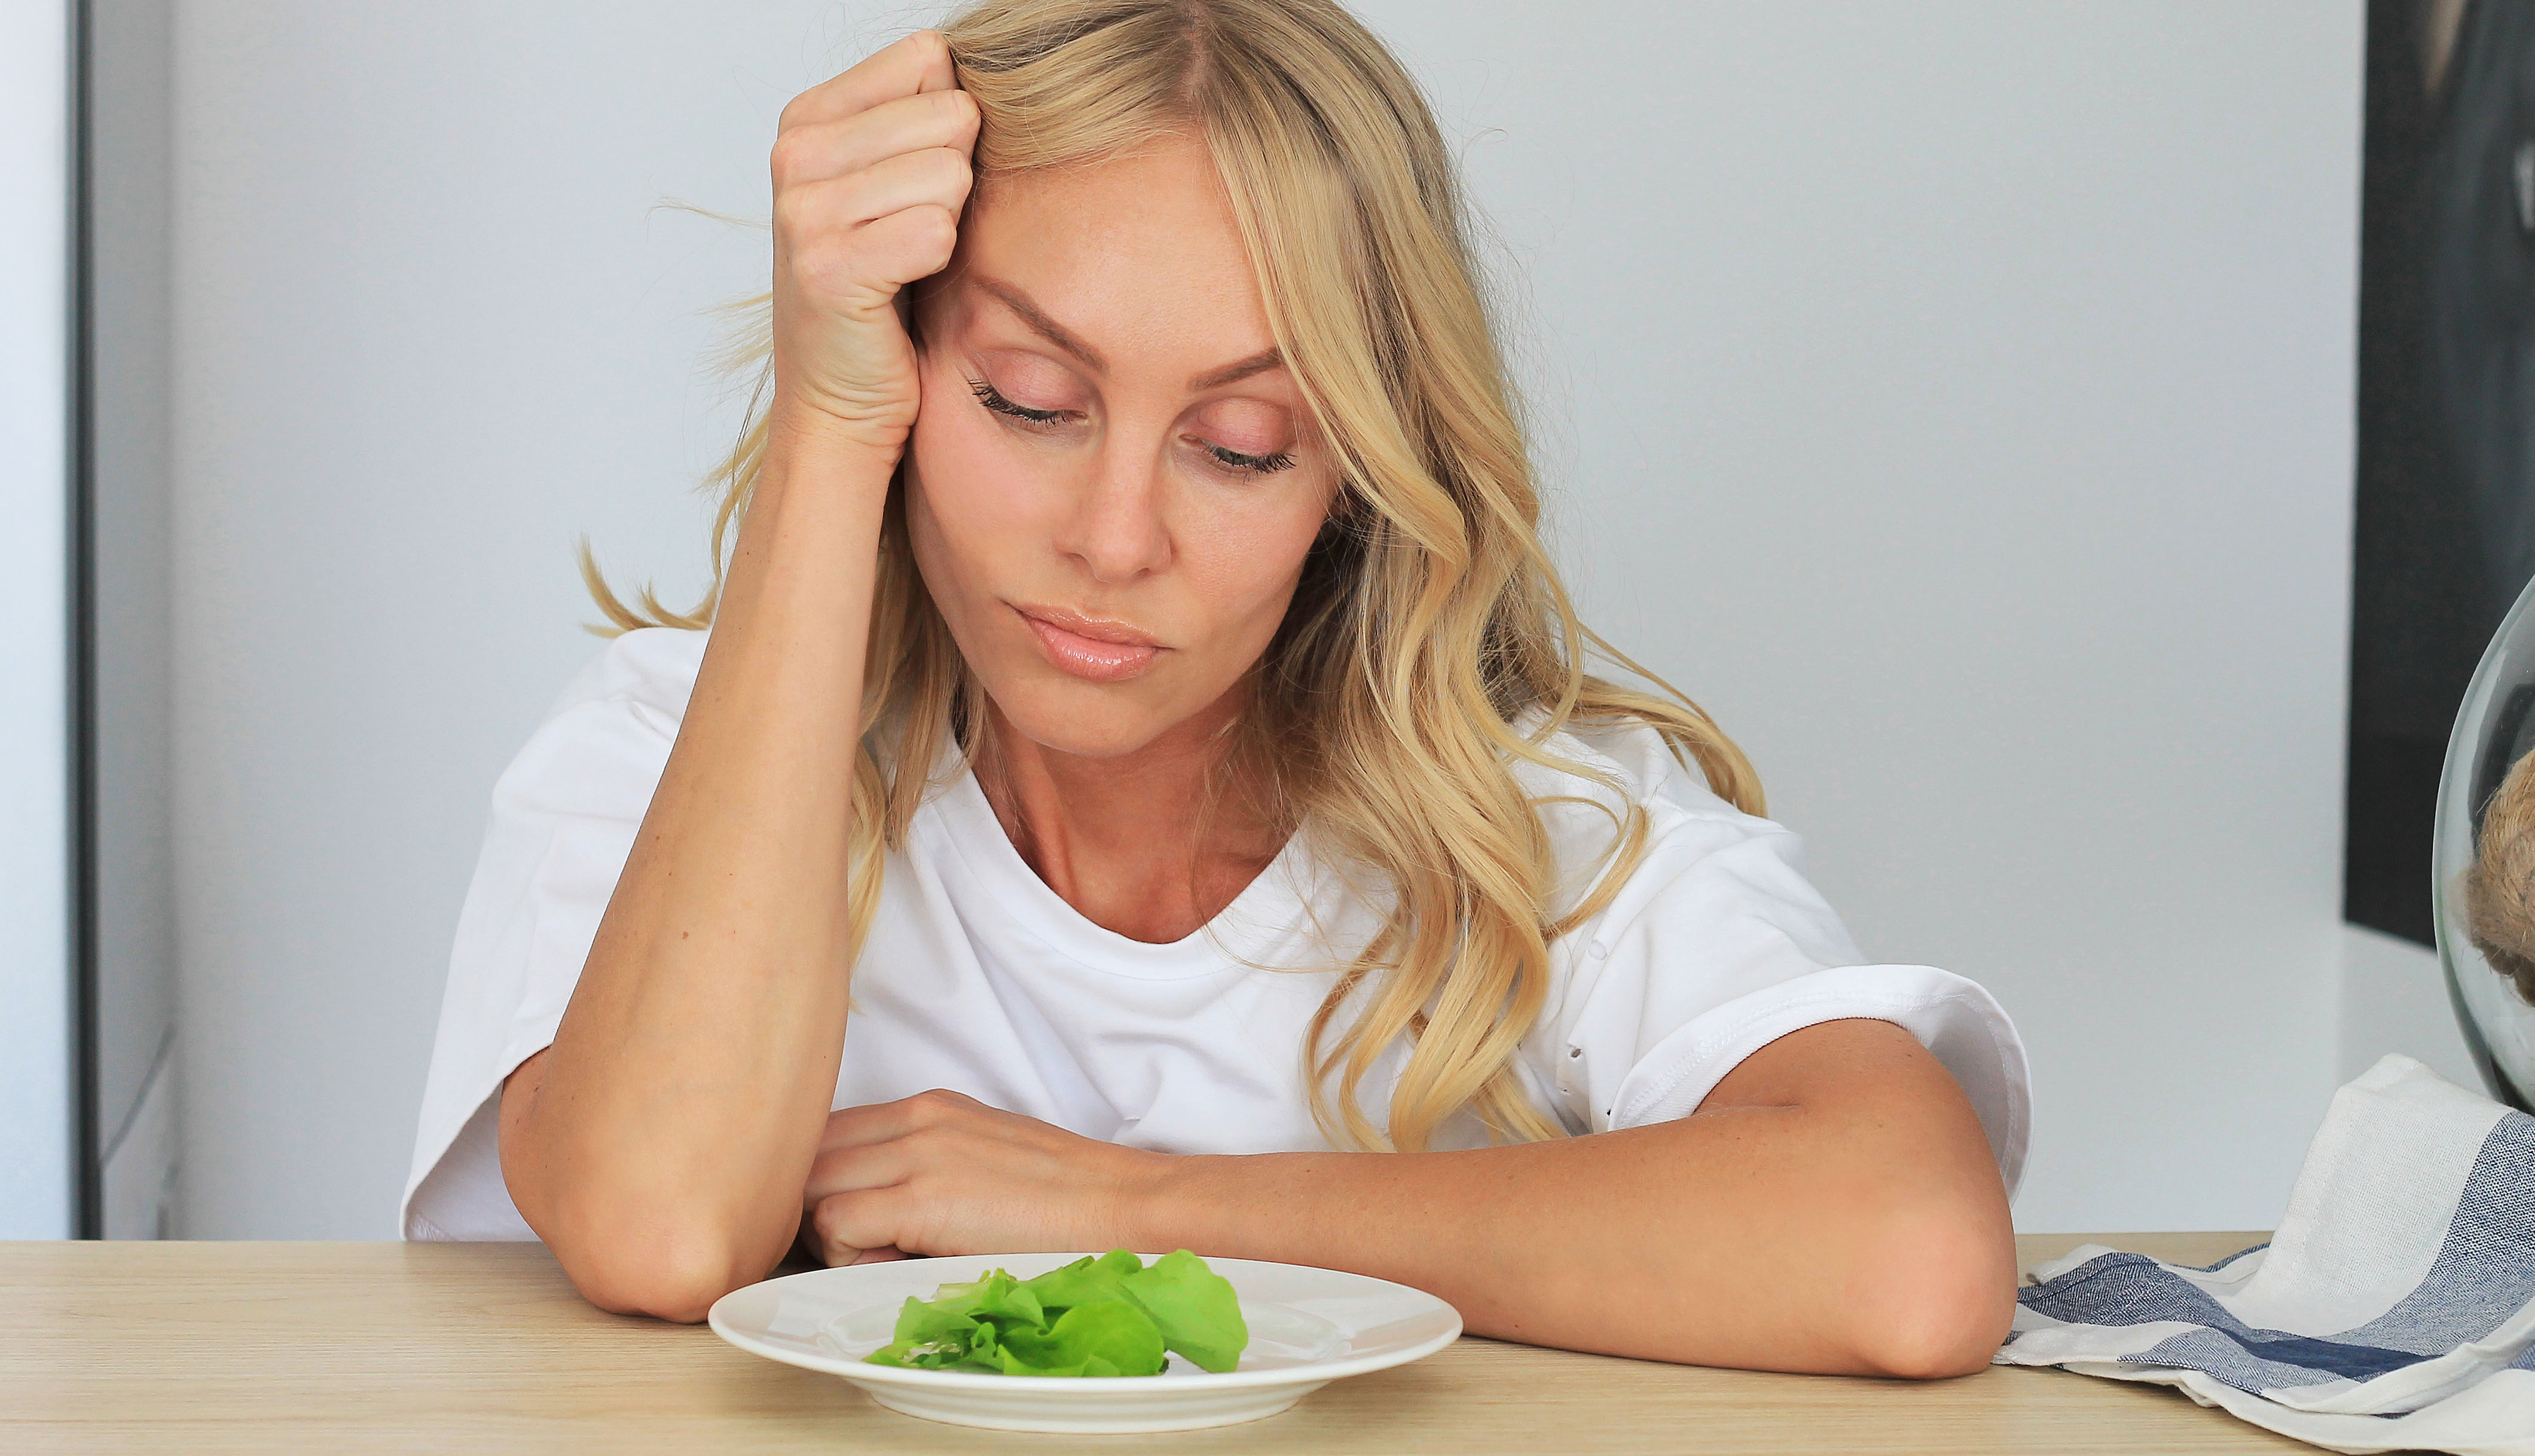 woman looking at salad not wanting to eat it